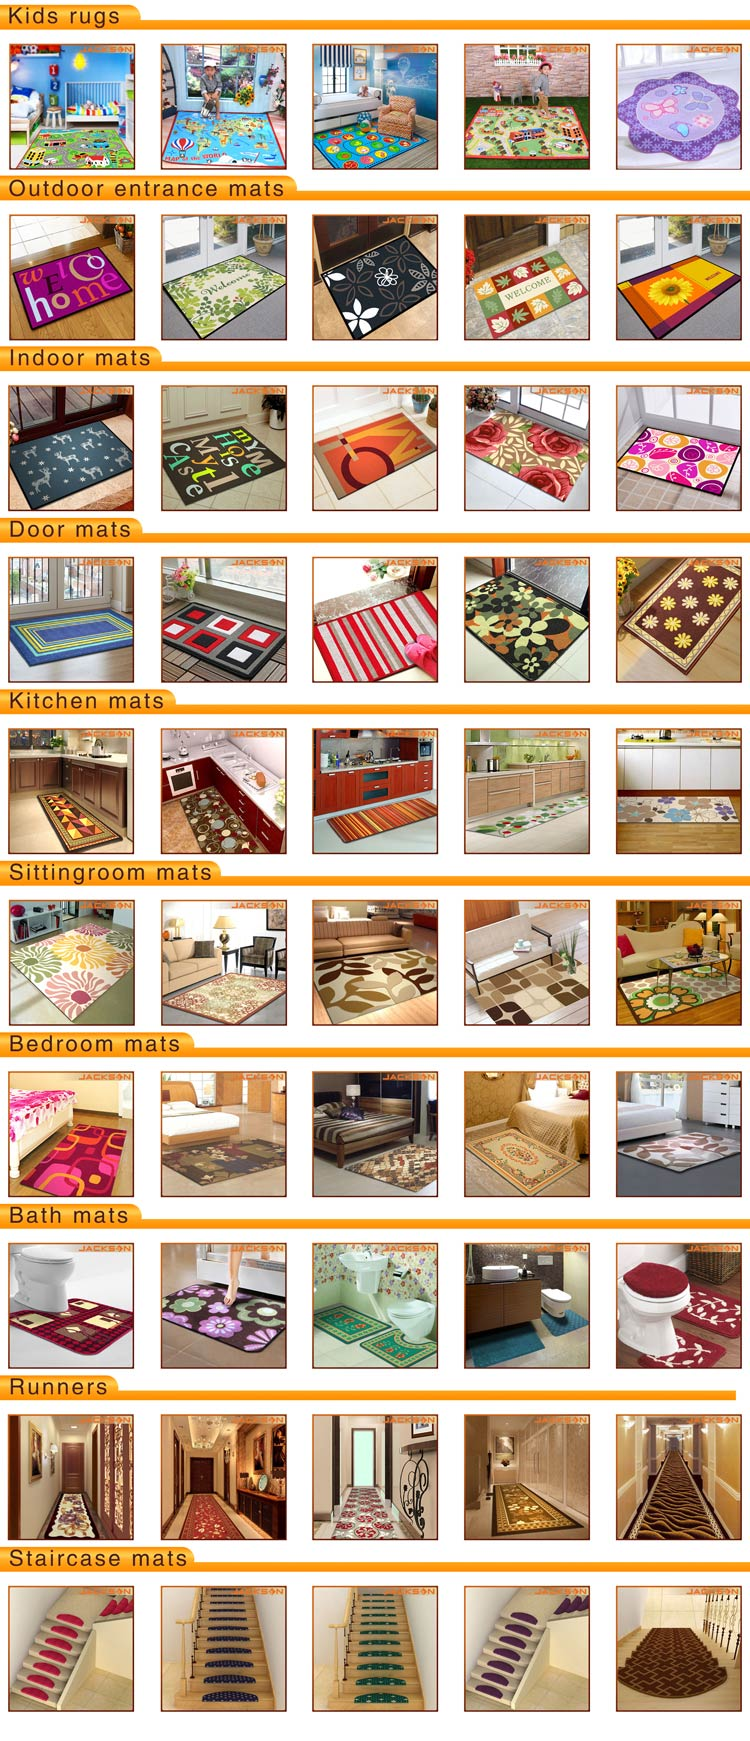 Luxury Hotel Carpet, Modern Rugs and Carpets